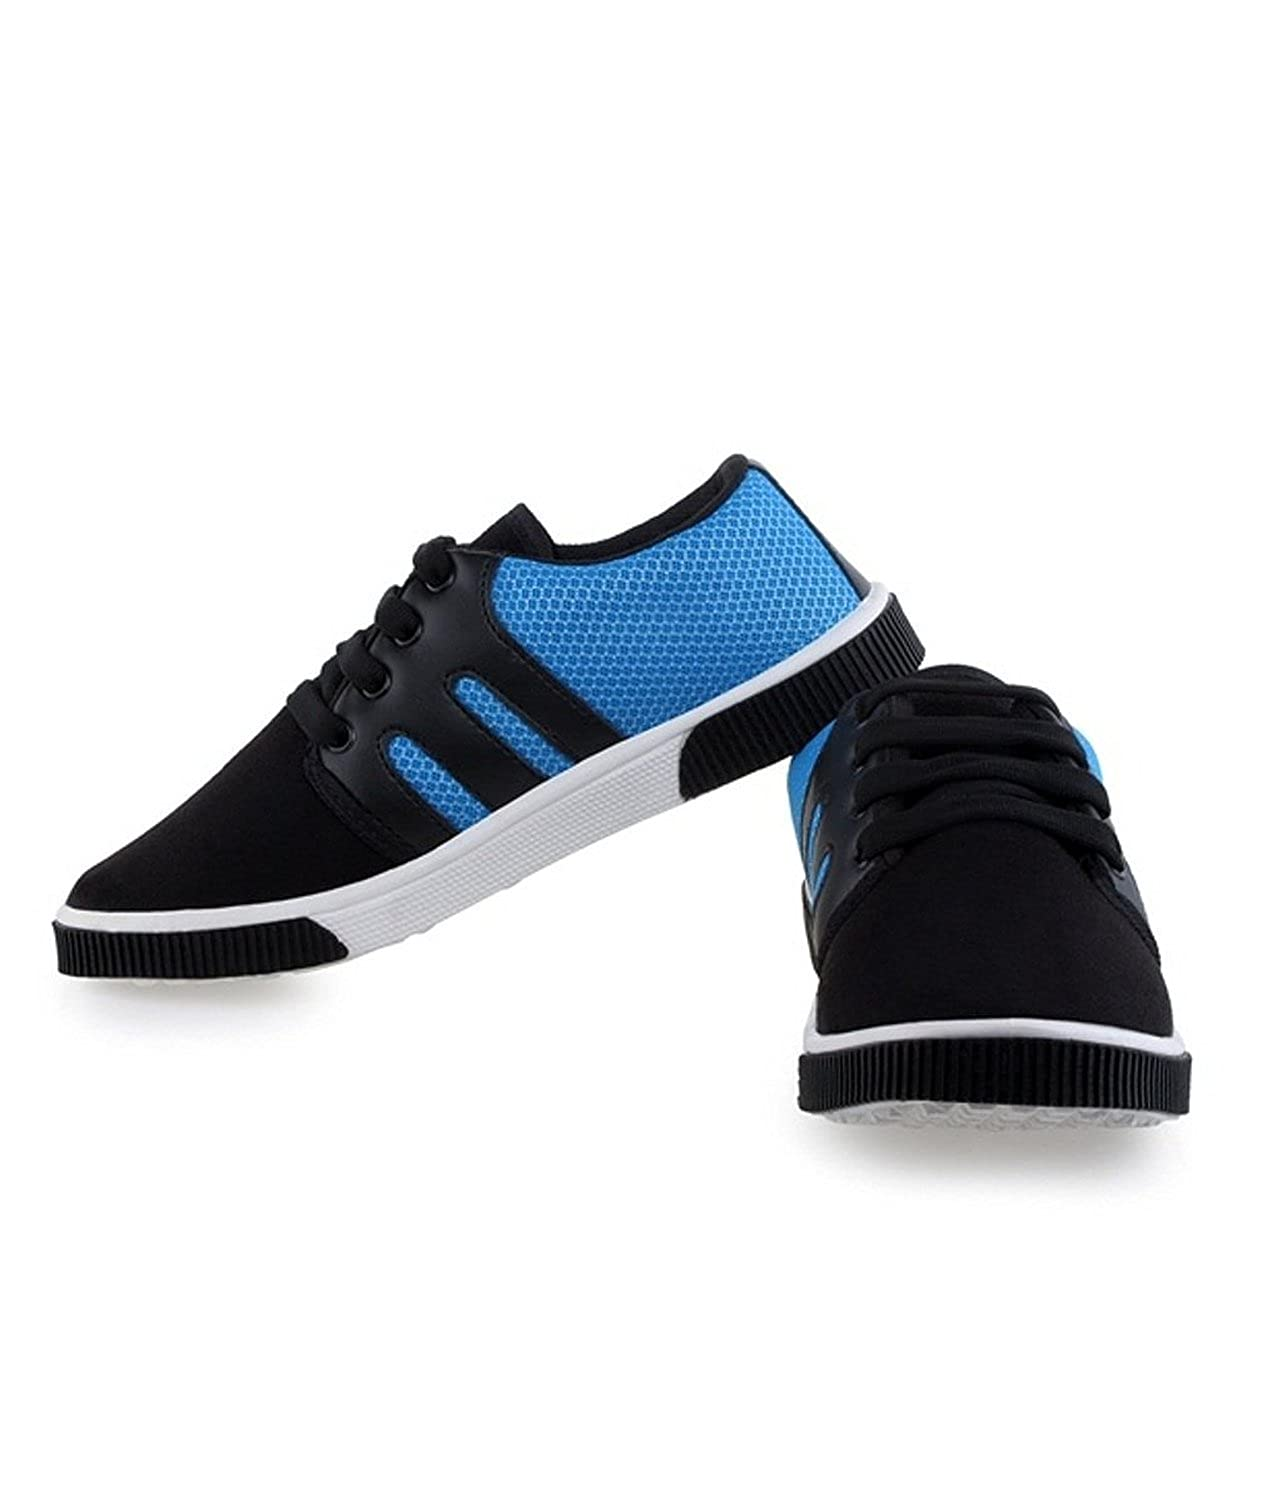 Chevit Mens Combo Speedride Loafers And Sneakers Buy Online At Low Tendencies Caps Savage Navy Prices In India